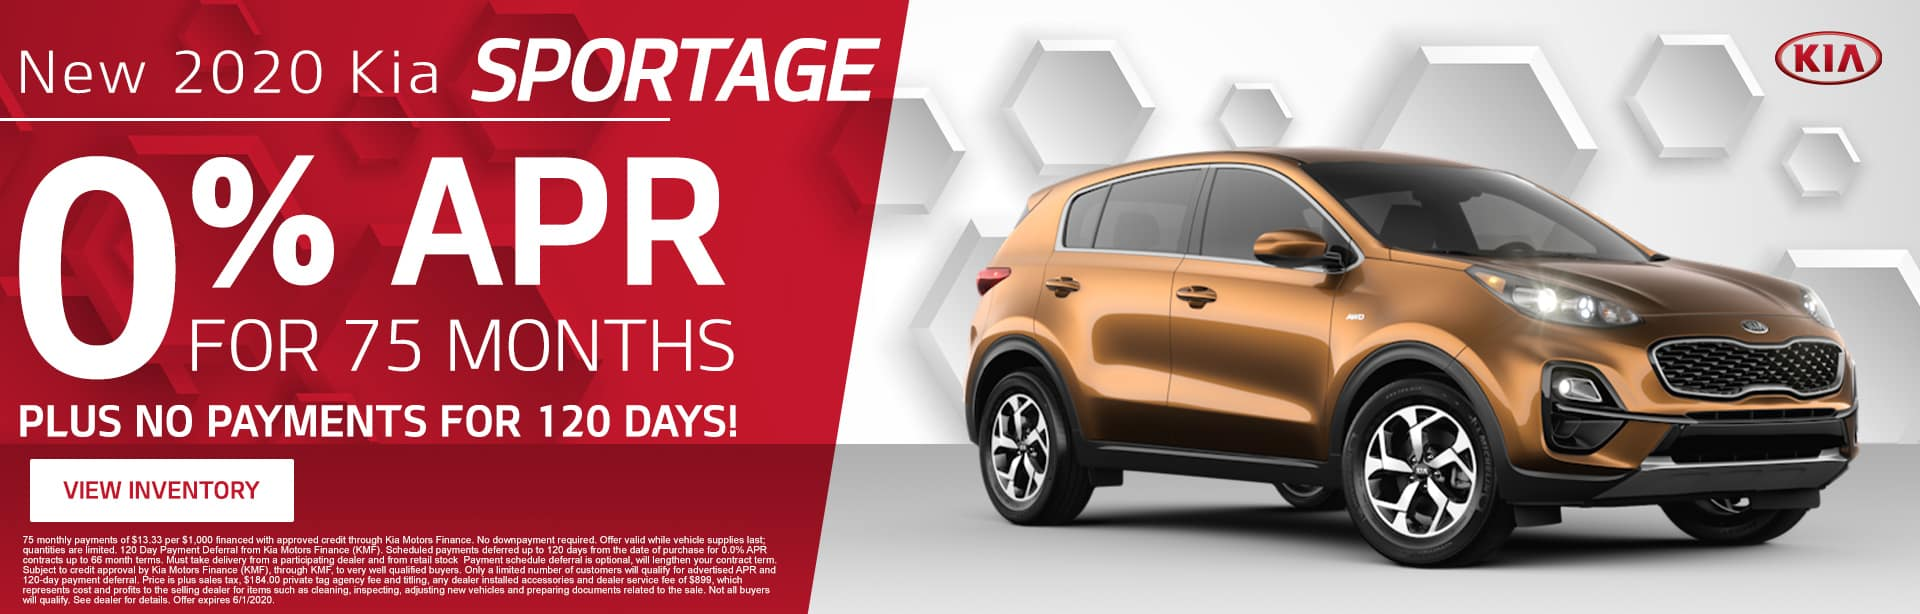 New 2020 Kia Sportage | 0% APR For 75 Months Plus No Payments For 120 Days!